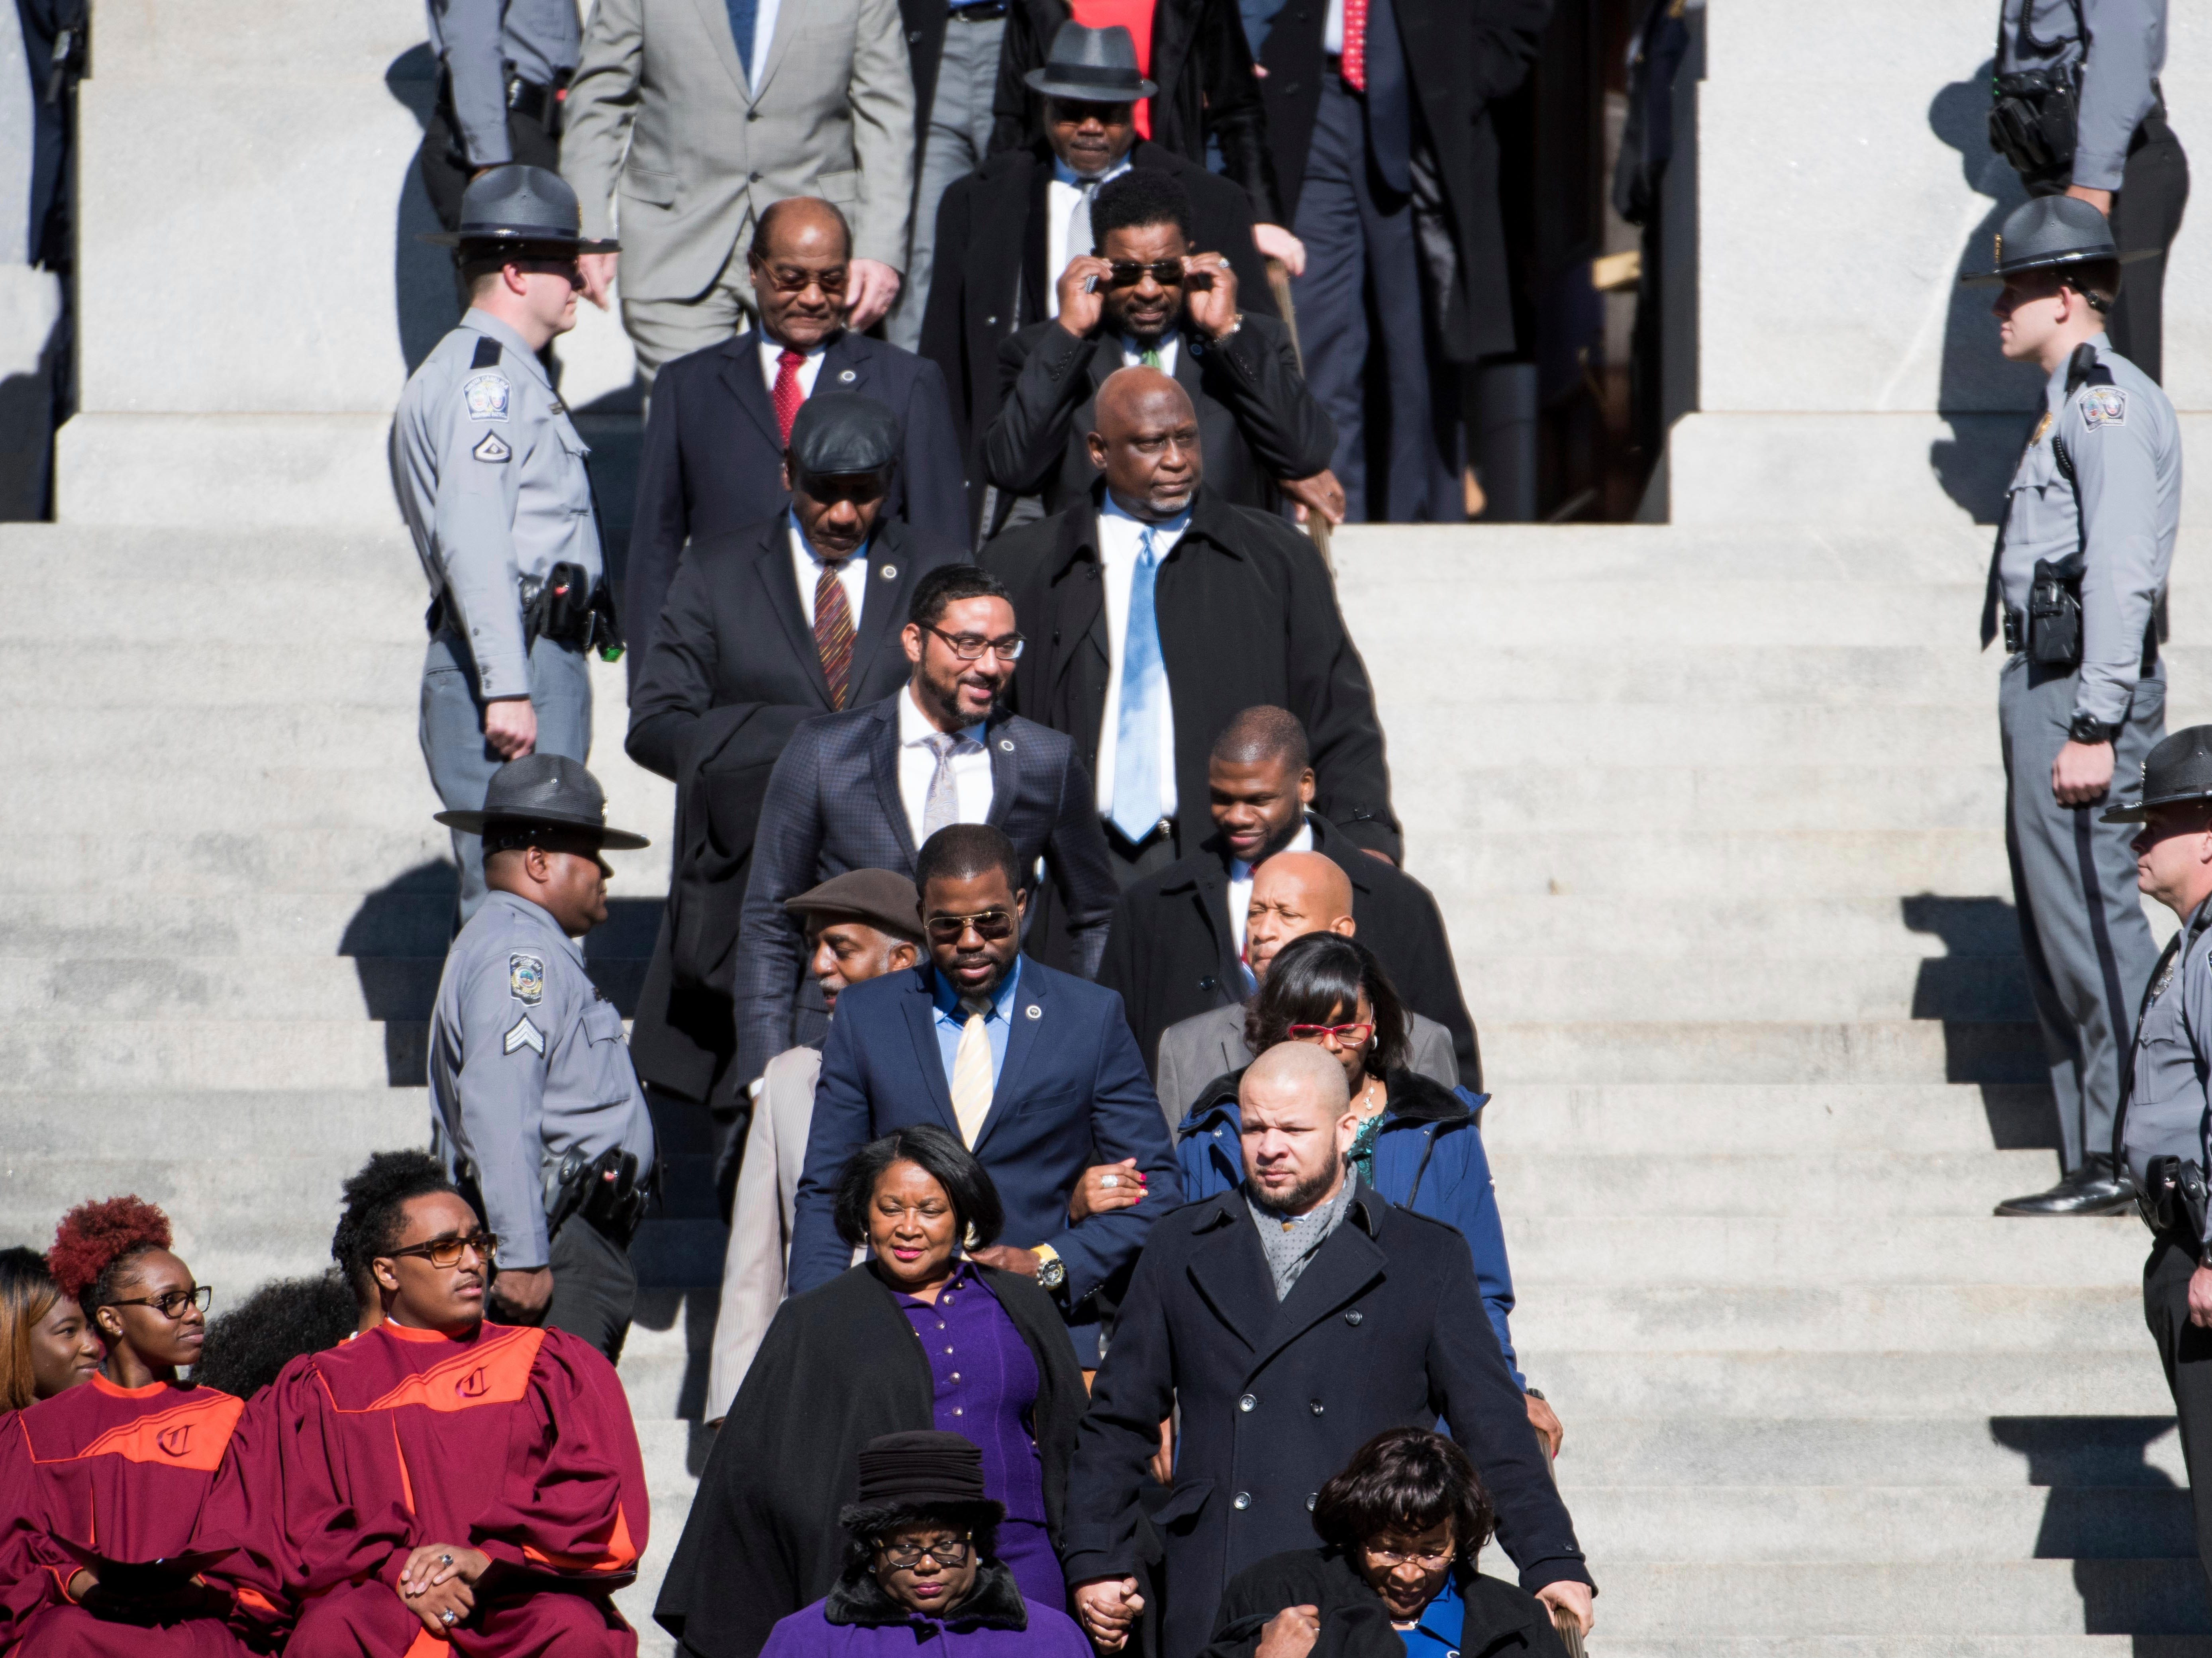 South Carolina House Democrats walk down the steps at the statehouse during inauguration ceremonies for Governor Henry McMaster, Wednesday, Jan. 9, 2019, in Columbia, S.C. (AP Photo/Sean Rayford)